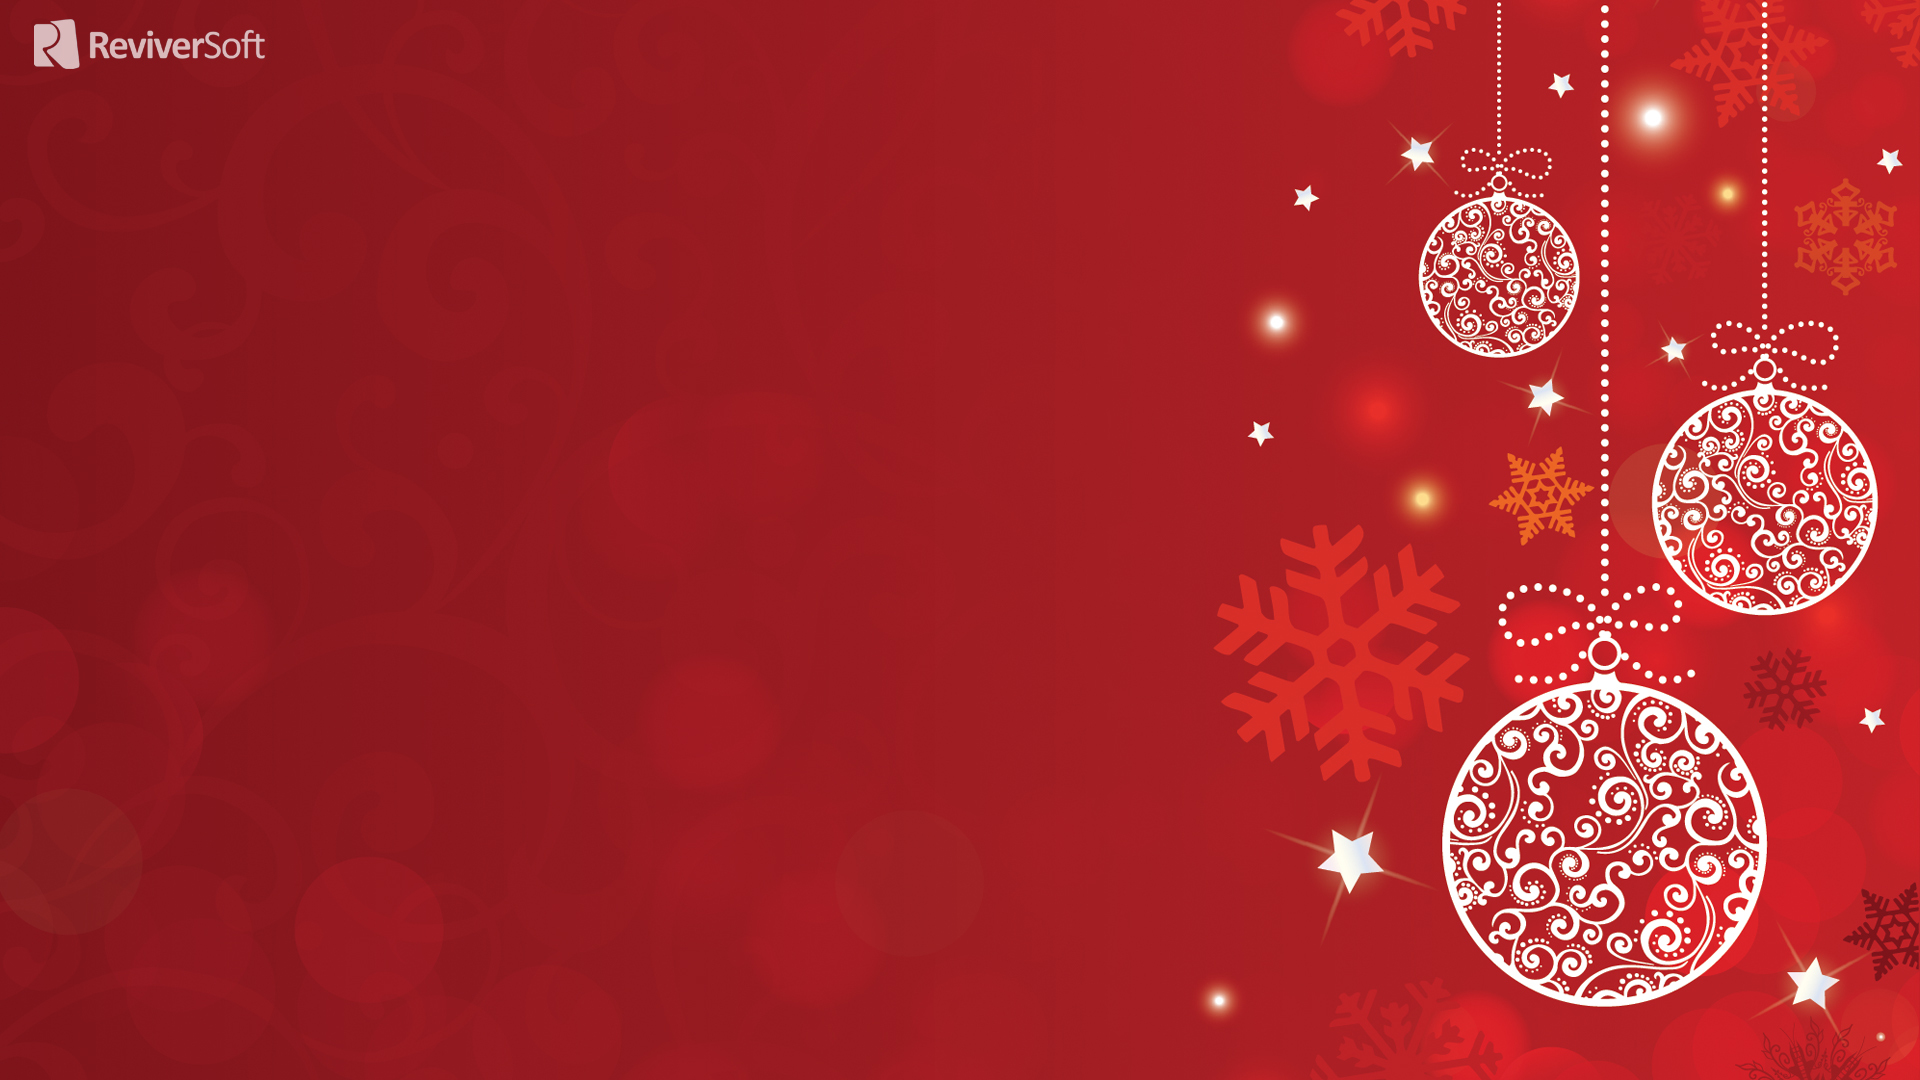 White Christmas decorations on a red background on 1920x1080